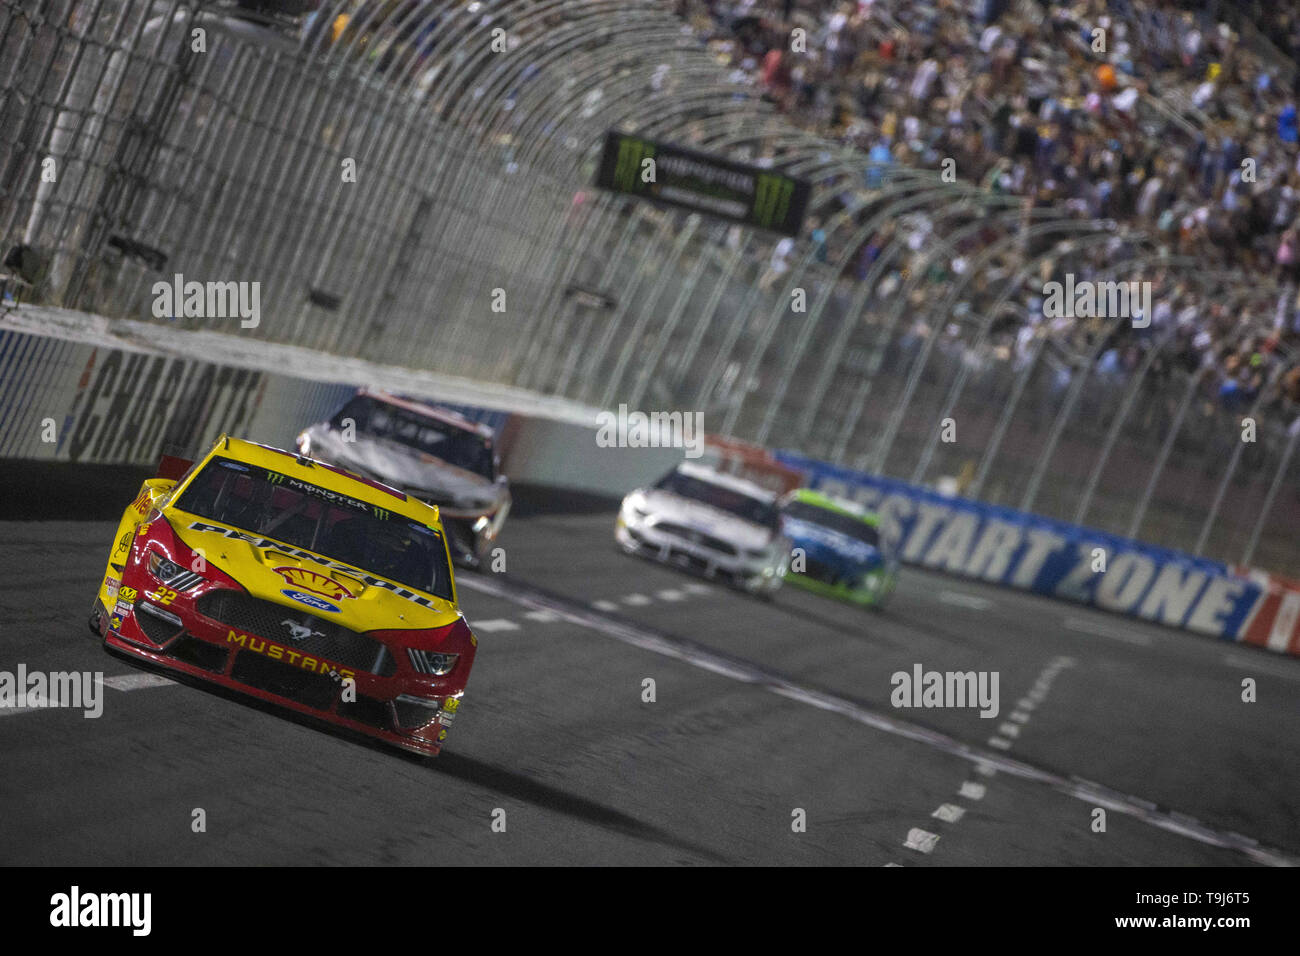 Concord, North Carolina, USA. 19th May, 2019. Joey Logano (22) races off turn four during the Monster Energy All-Star Race at Charlotte Motor Speedway in Concord, North Carolina. (Credit Image: © Stephen A. Arce/ASP) Credit: ZUMA Press, Inc./Alamy Live News - Stock Image